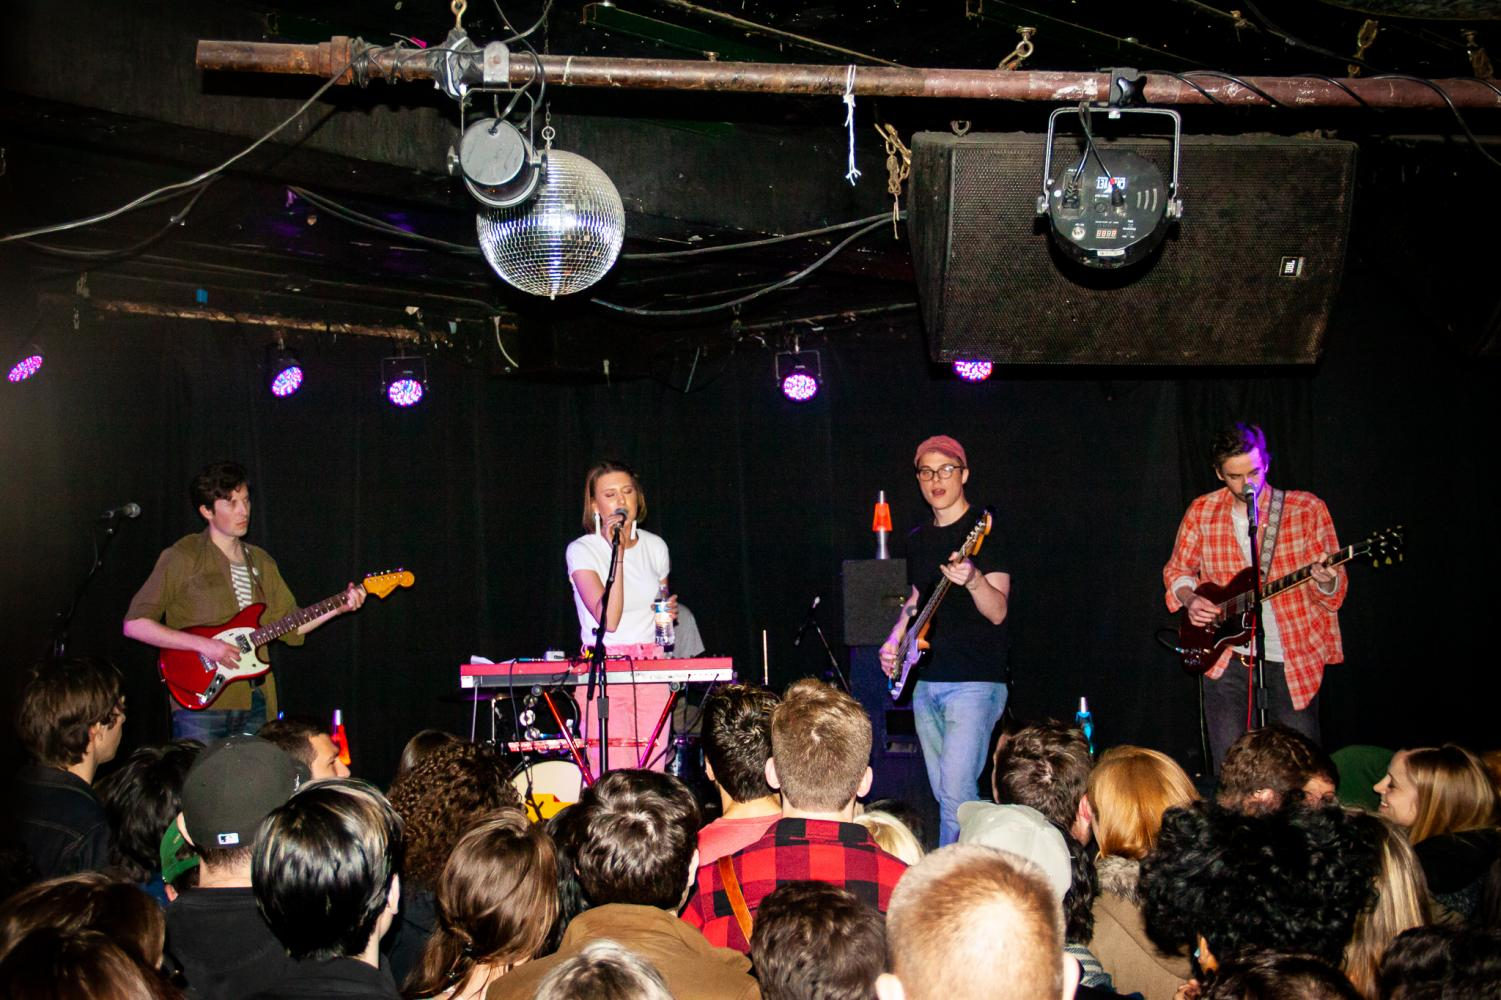 The five-piece band Varsity on stage during their show at Empty Bottle on Friday April 20. Their setlist for the performance showcased an organic spin on indie rock pop. (Alicia Maciel | The DePaulia)